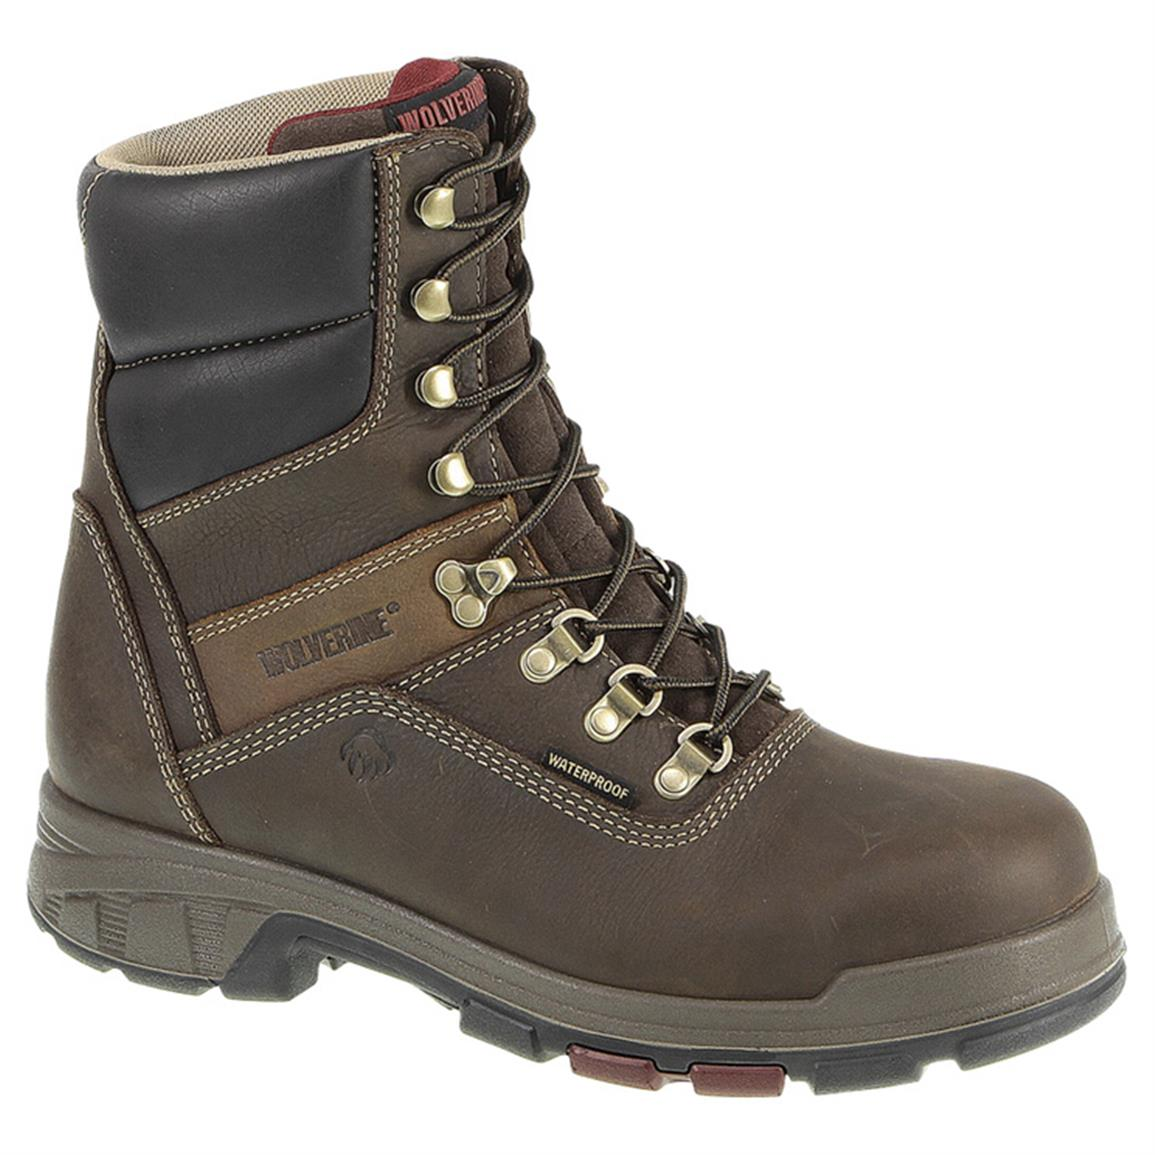 Men's Wolverine® 8 inch Cabor EPX Waterproof Work Boots